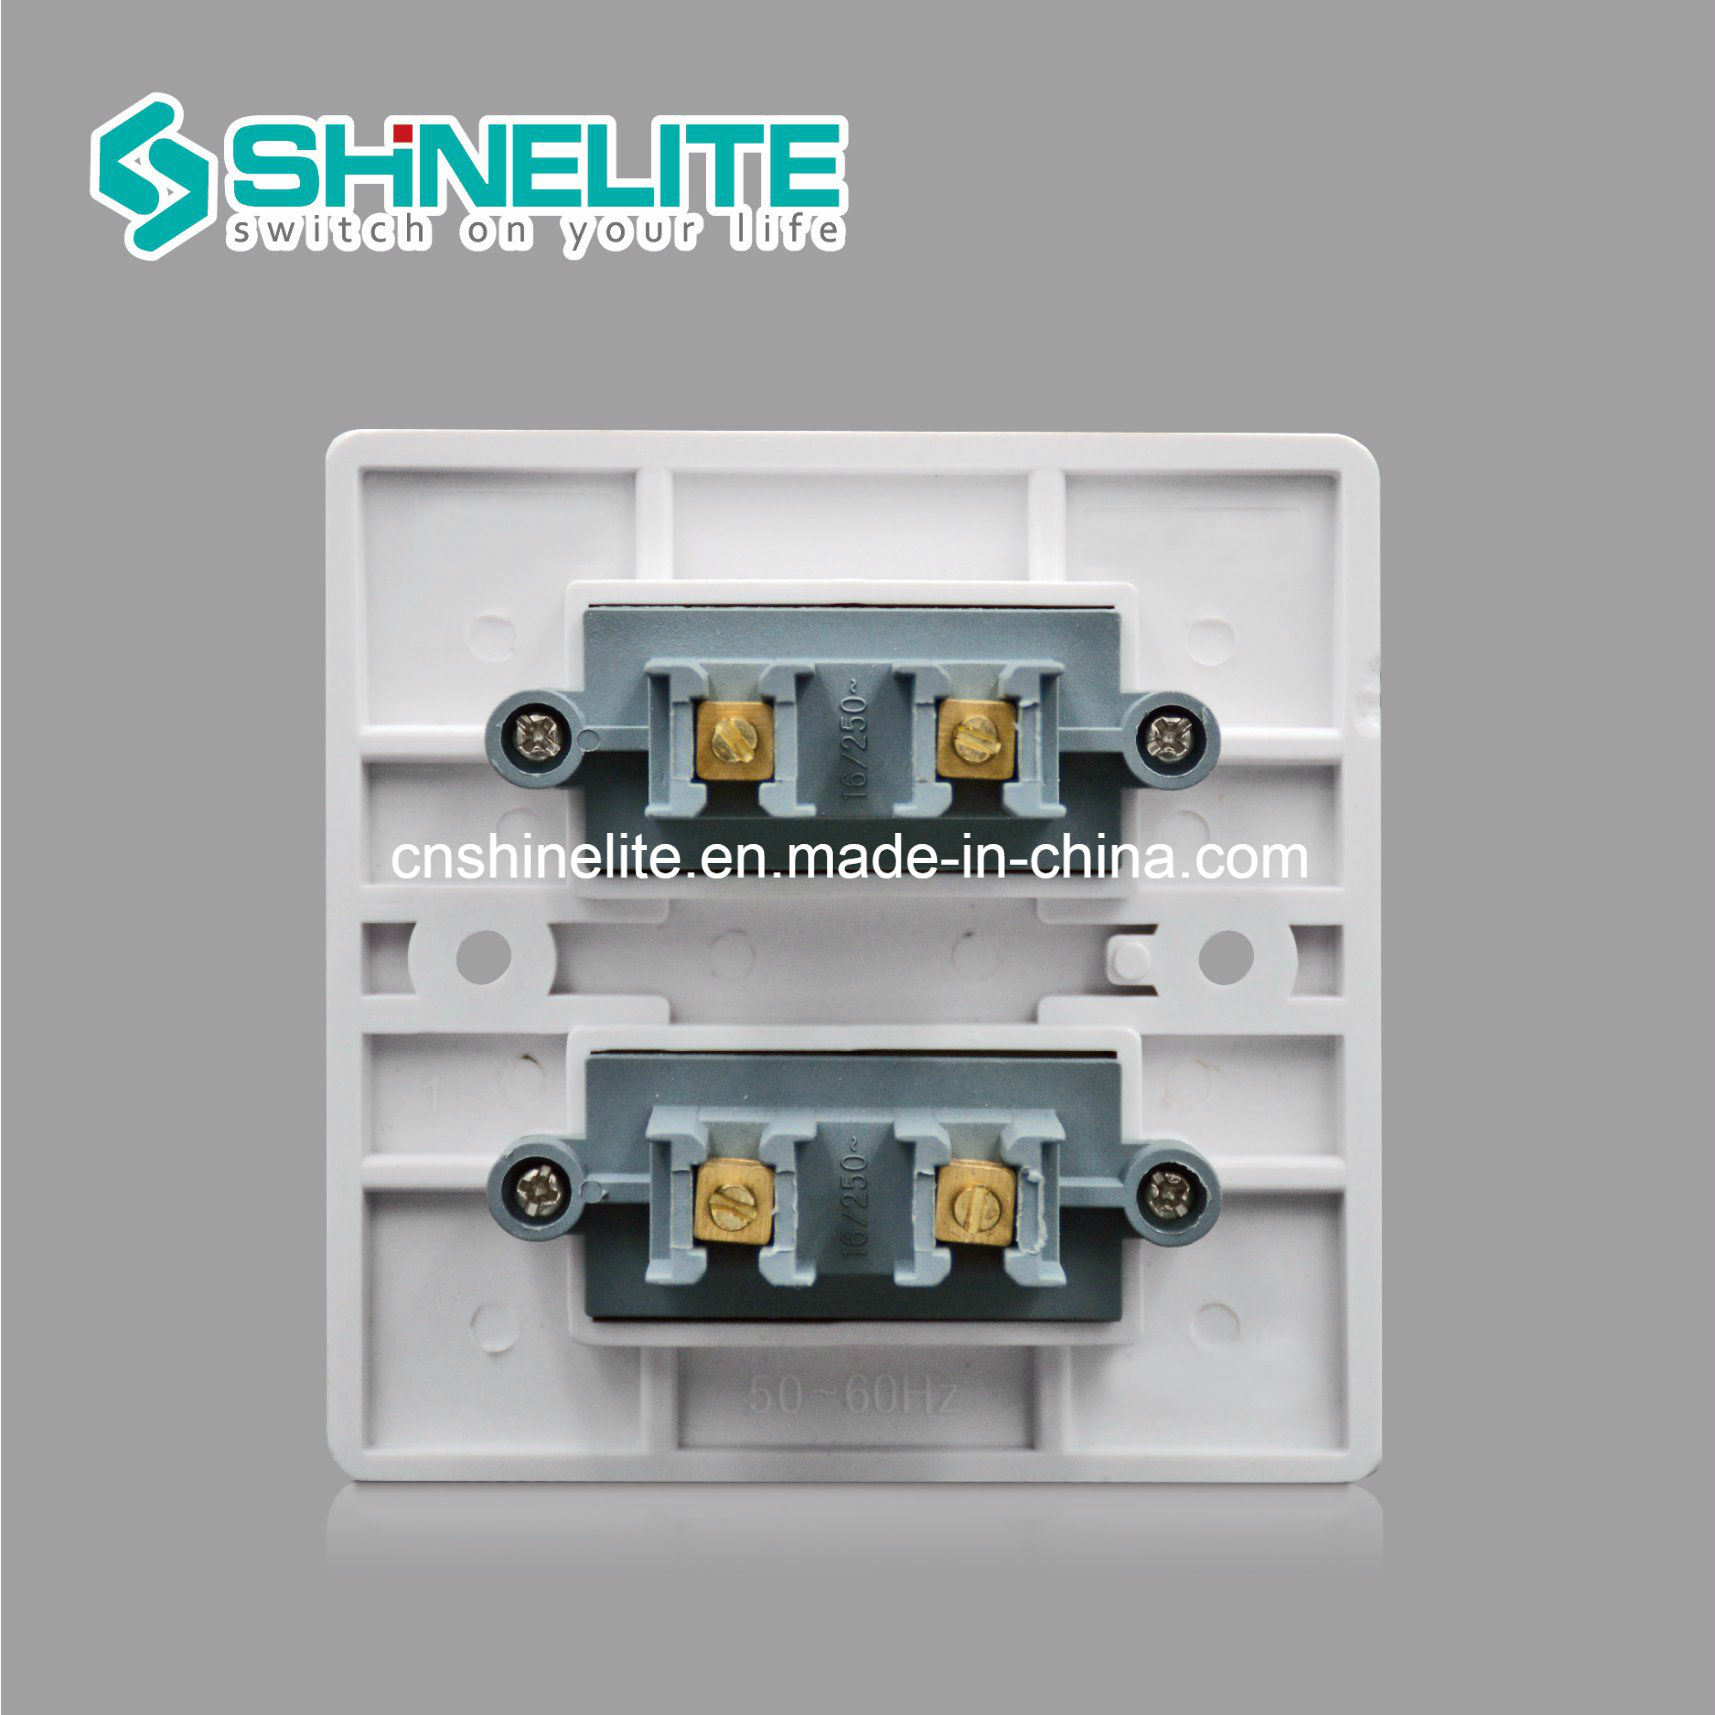 China 16A Multi Function Socket with 20A Double Pole Switch Photos ...